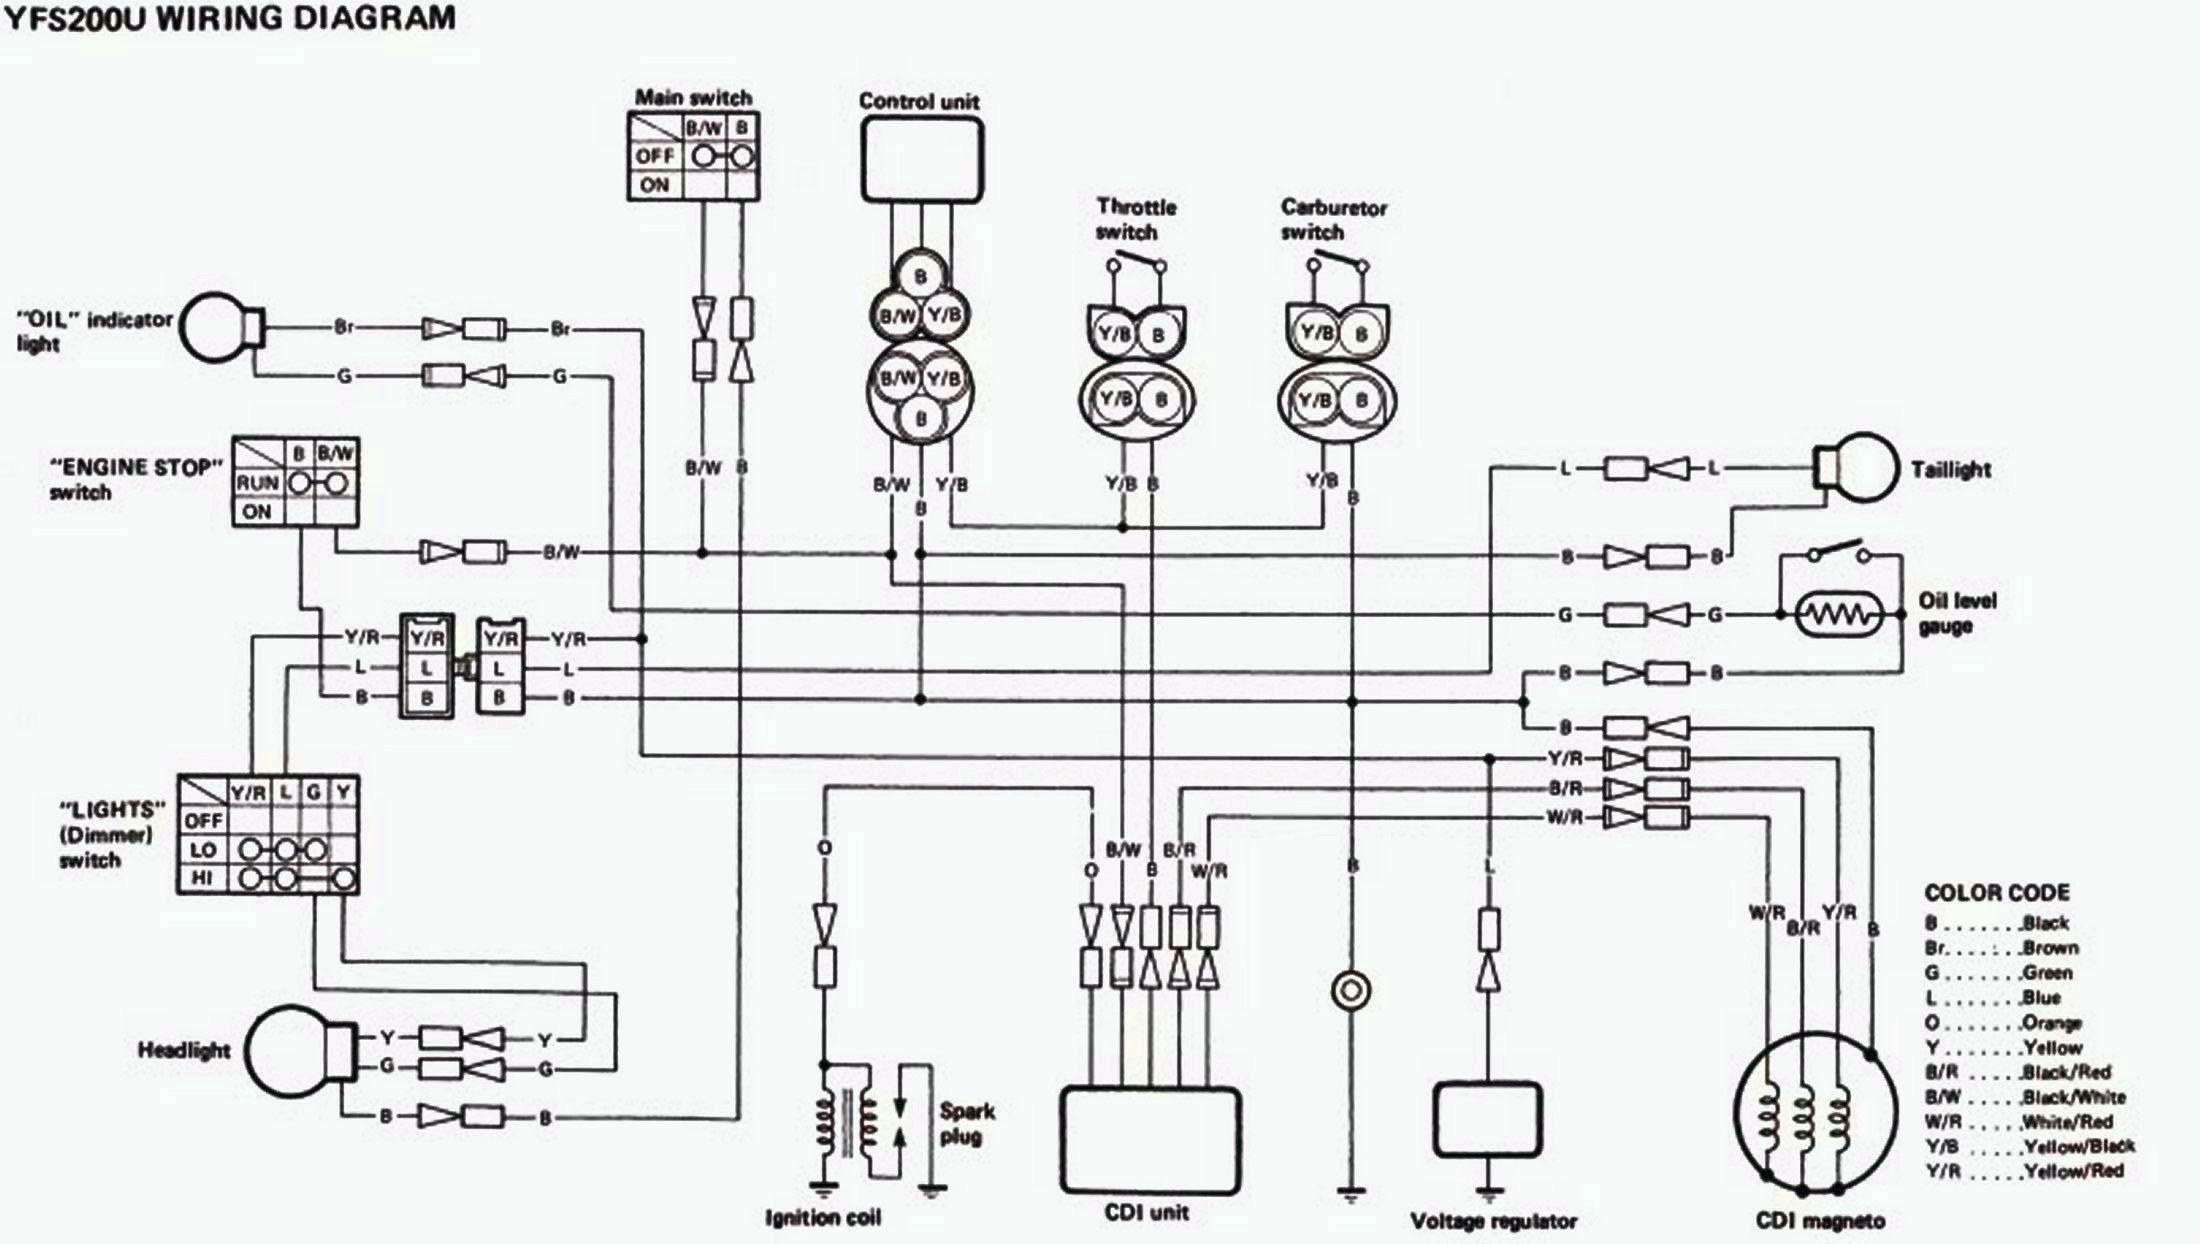 diagram 2005 yamaha blaster wiring diagram full version hd quality wiring  diagram - okcwebdesigner.kinggo.fr  okcwebdesigner kinggo fr